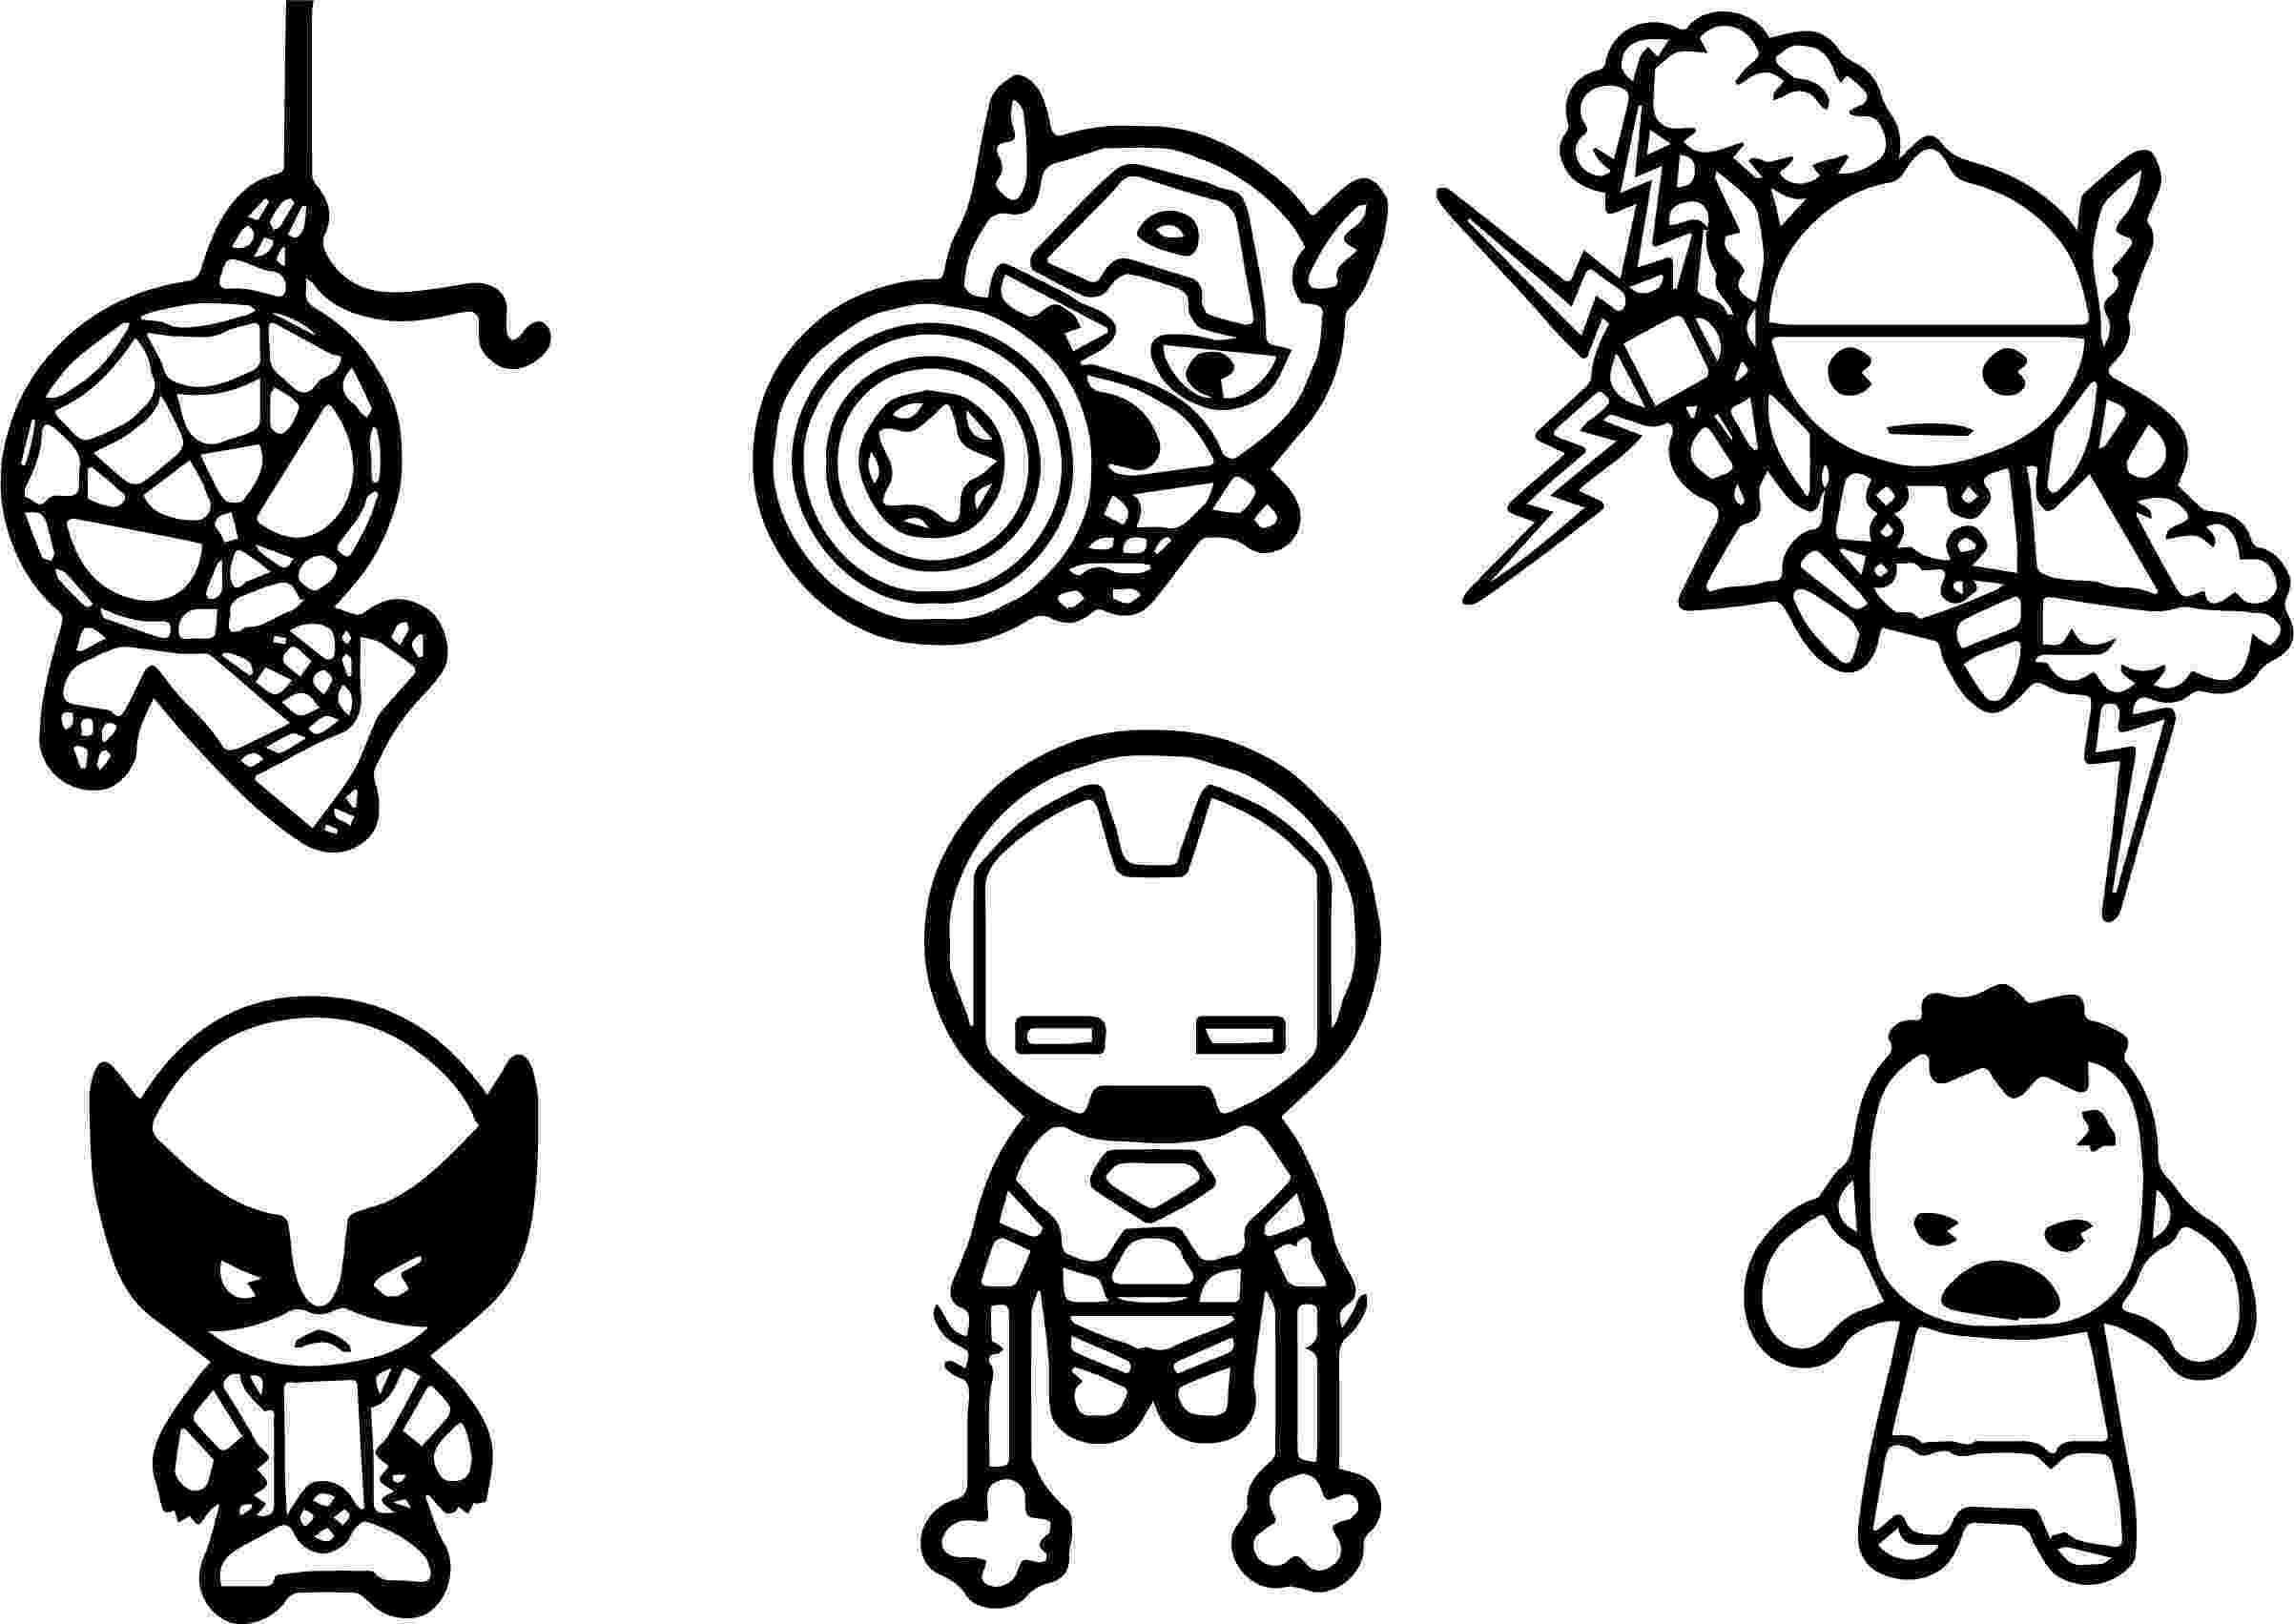 avengers coloring pictures superhero coloring pages best coloring pages for kids avengers pictures coloring